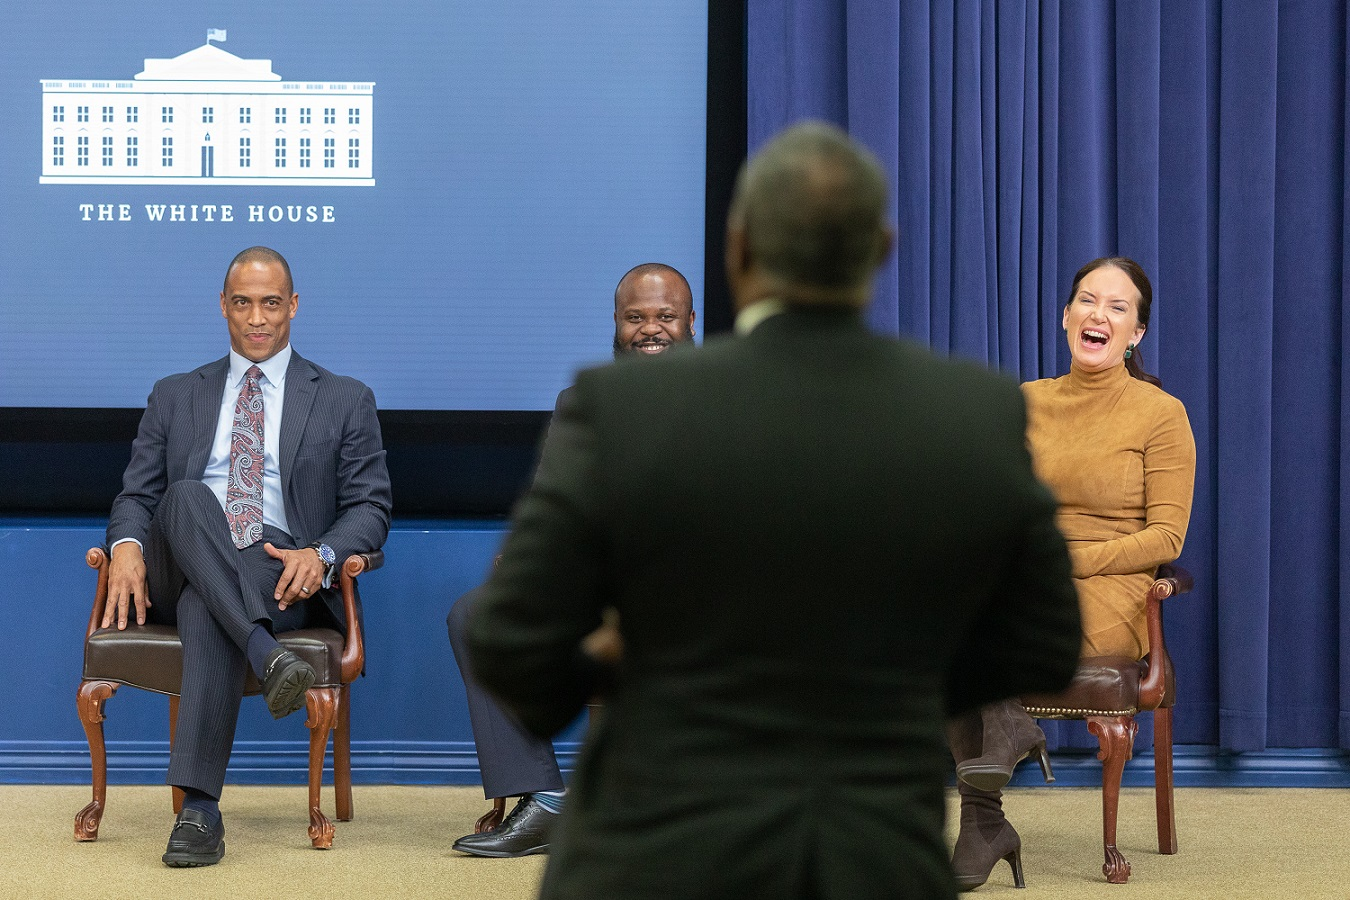 Executive Director Turner and Ja'Ron Smith and Brooke Rollins of the Office of American Innovation lead an entrepreneurship event at the White House